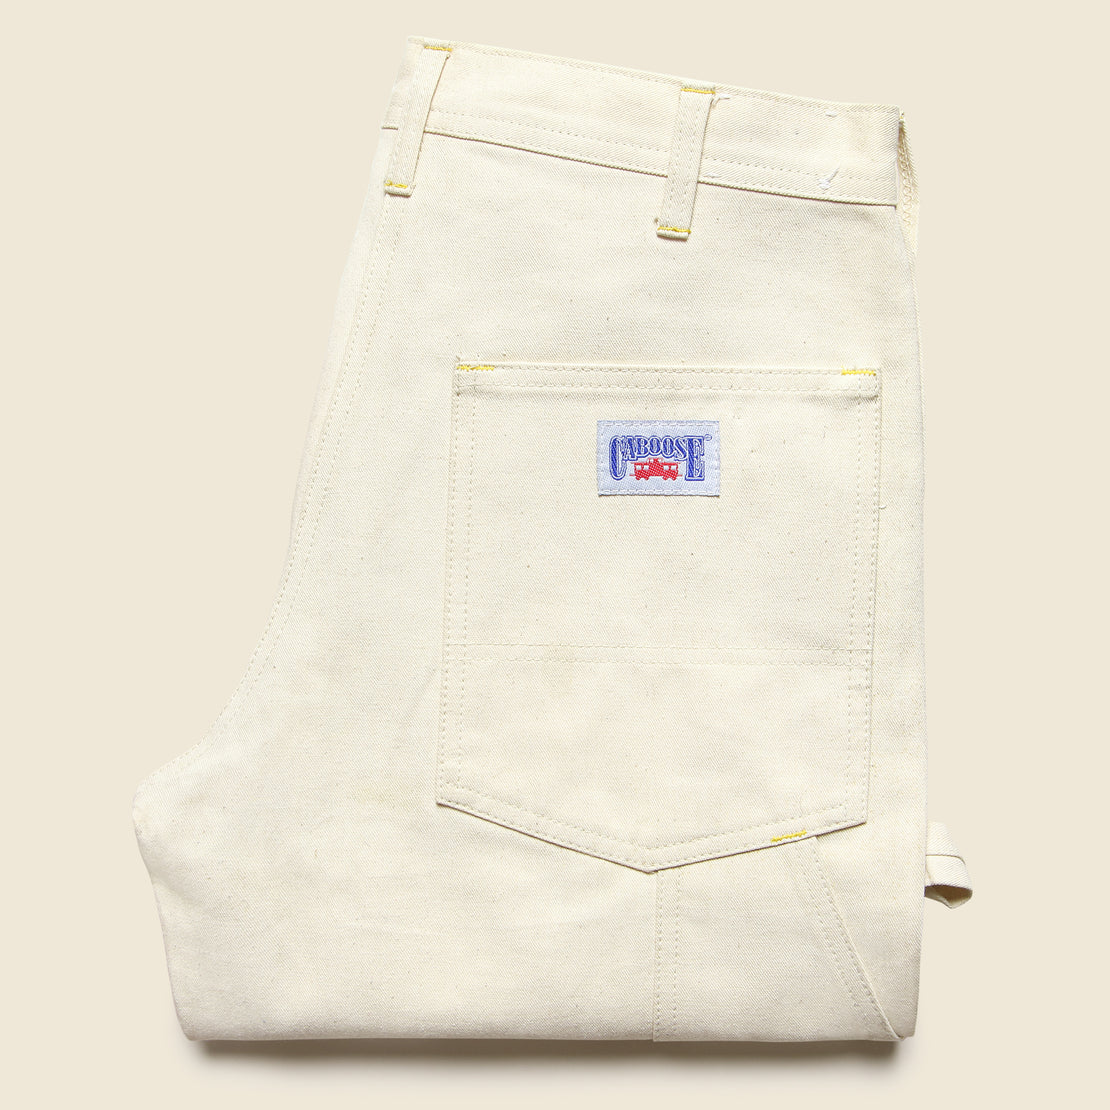 Deadstock Caboose Canvas Pants - Natural